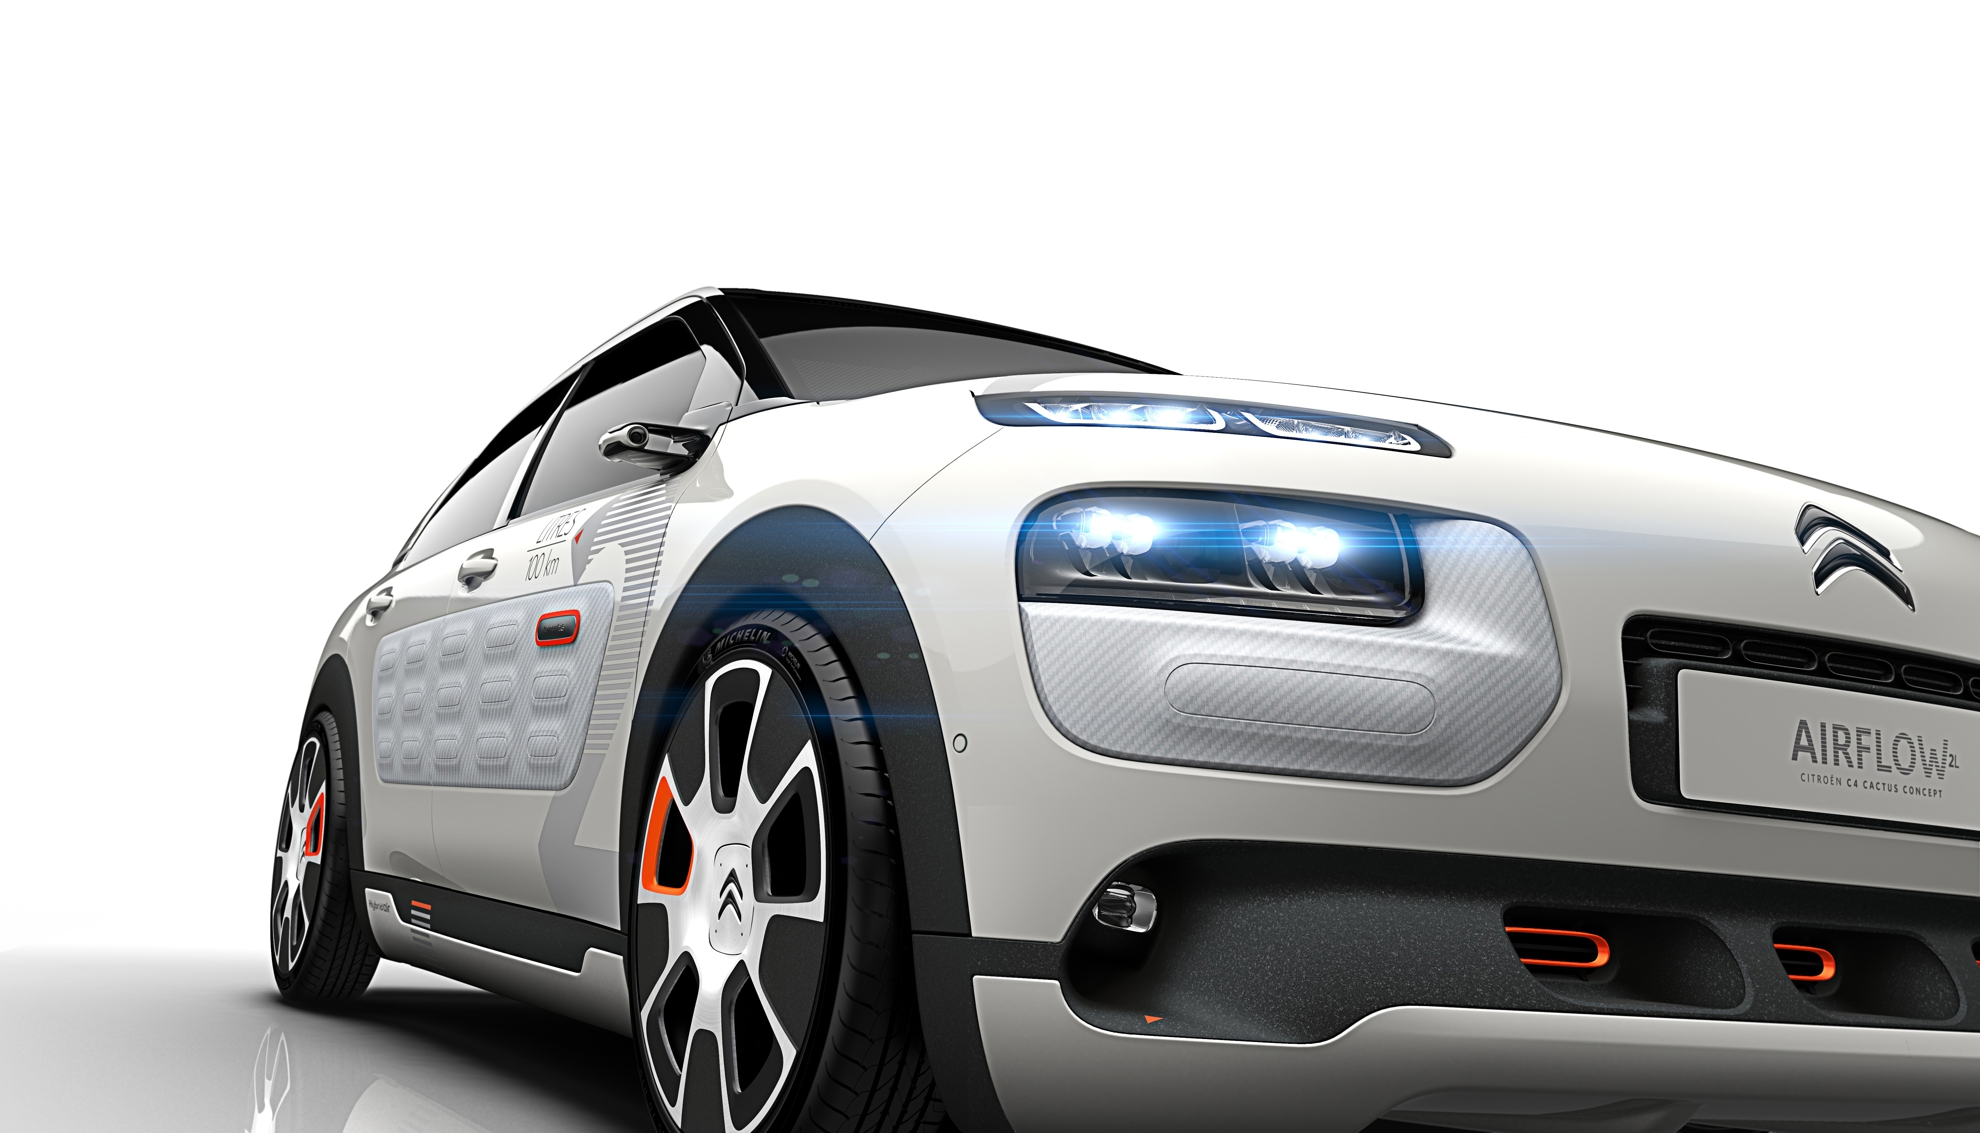 paris motor show 2014 citroen cactus c4 concept car. Black Bedroom Furniture Sets. Home Design Ideas